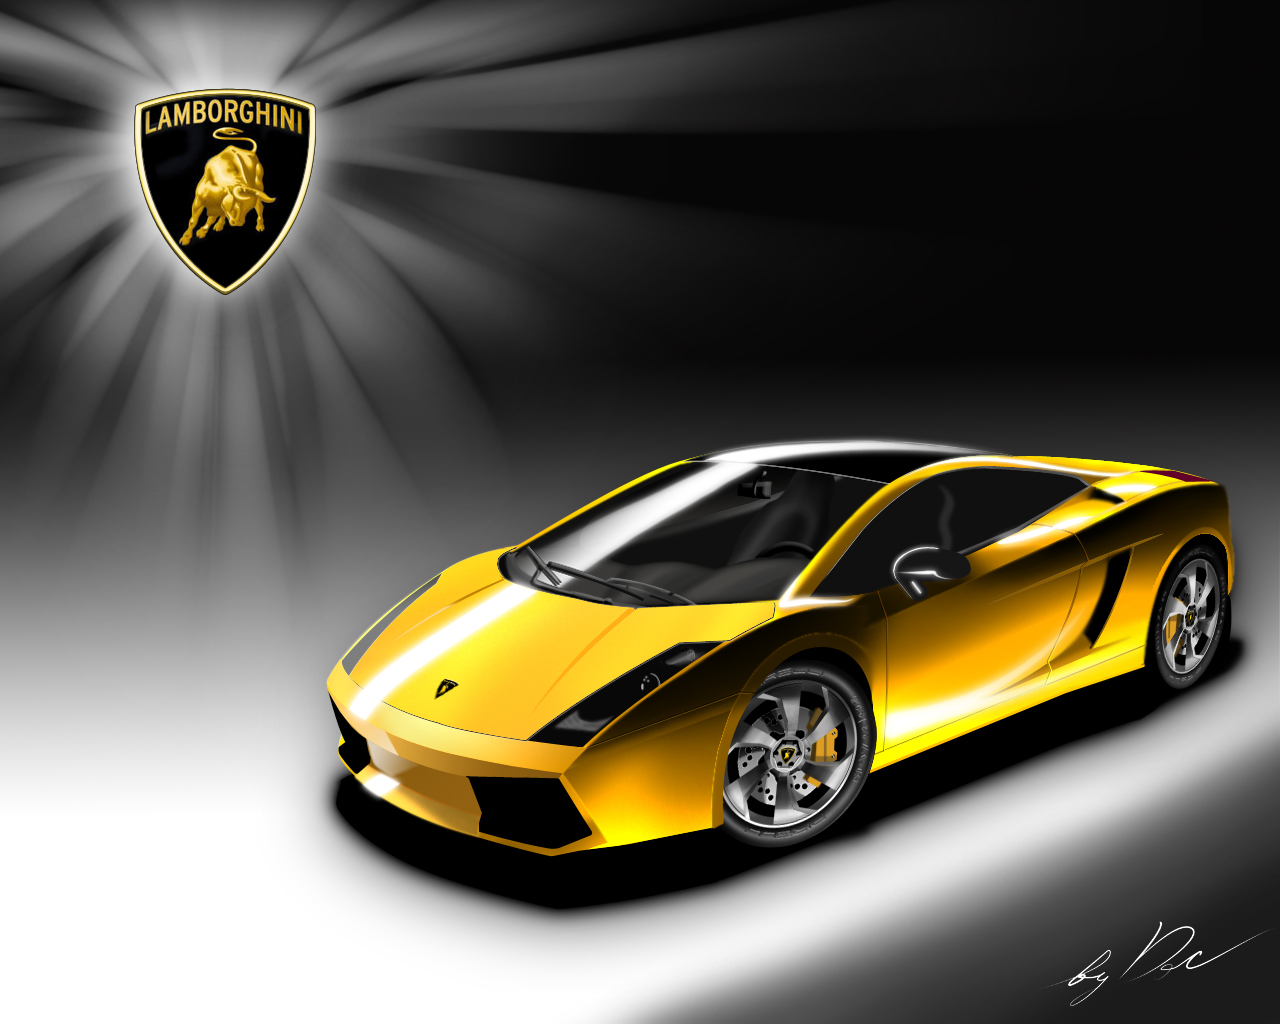 List Of Car Brands >> Auto Car: Lamborghini Wallpaper